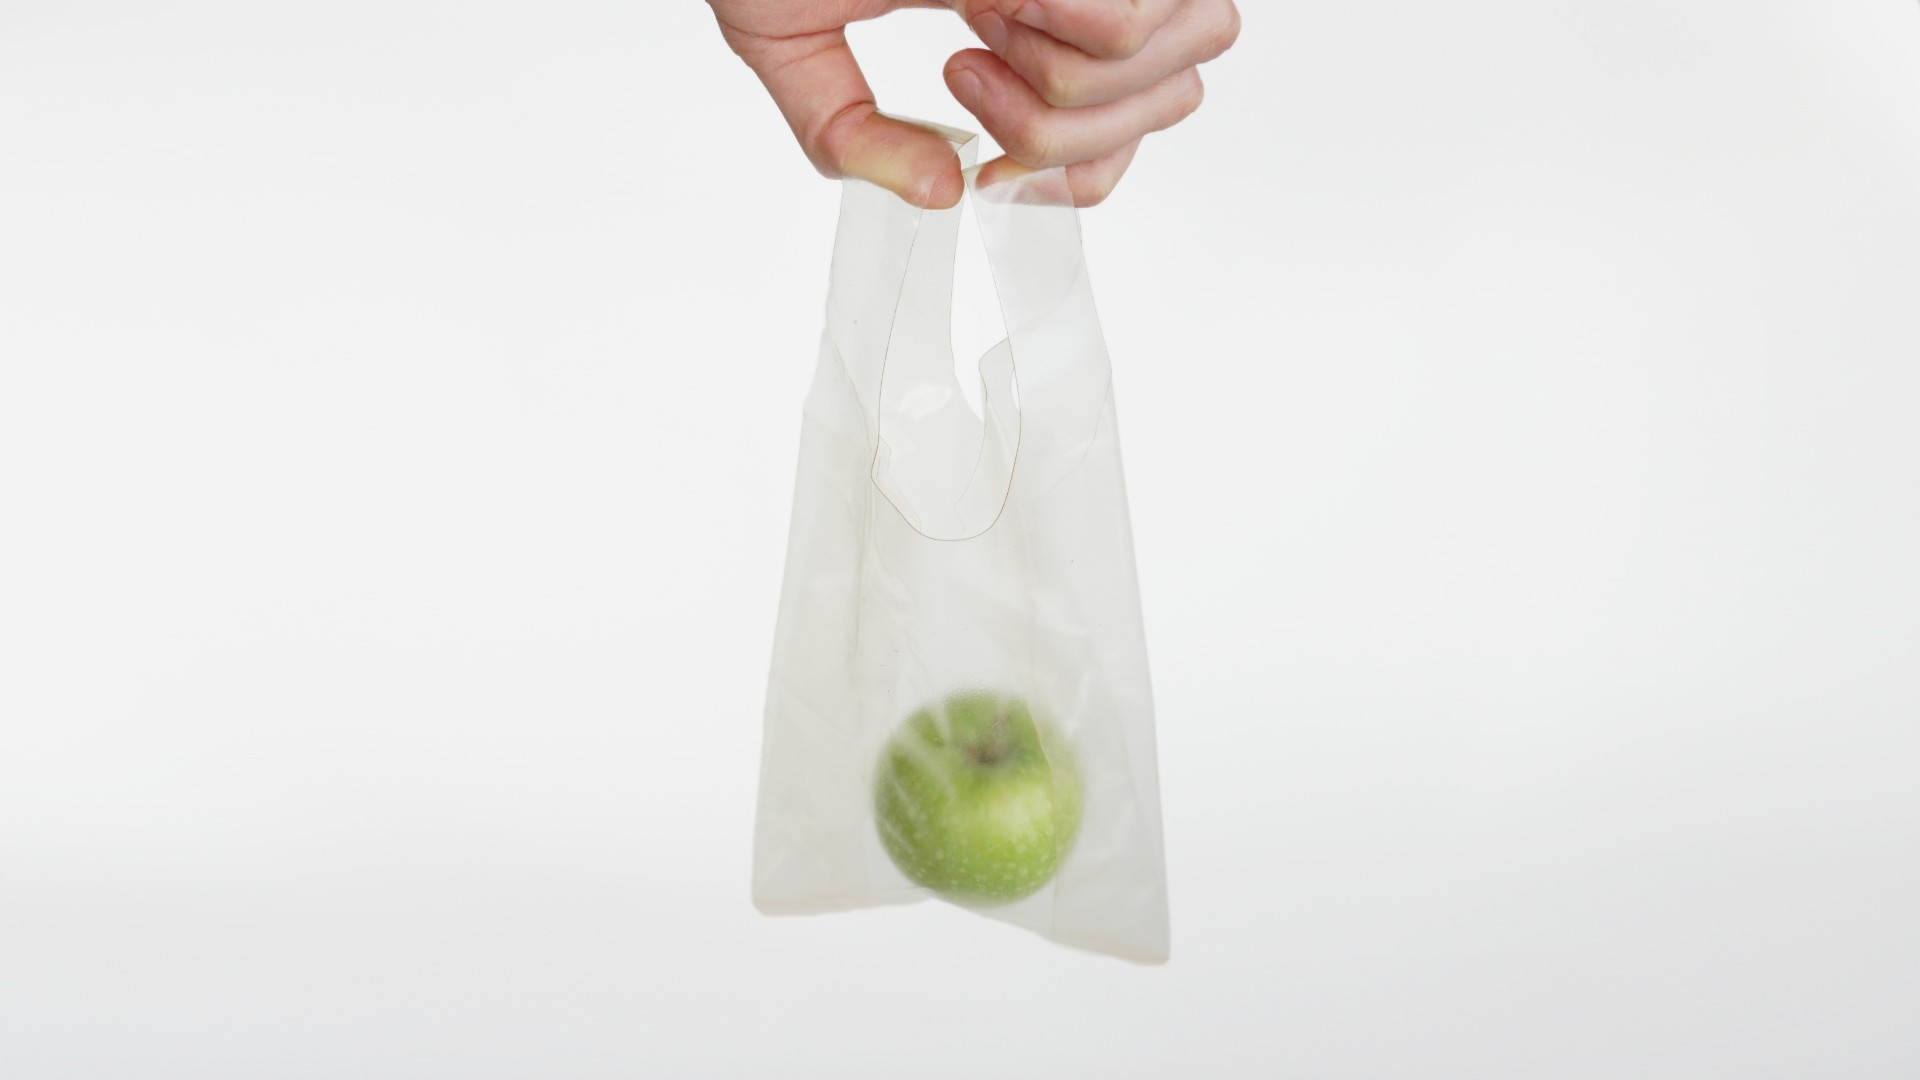 Dyson Award won by plastic bags made  from dead fish